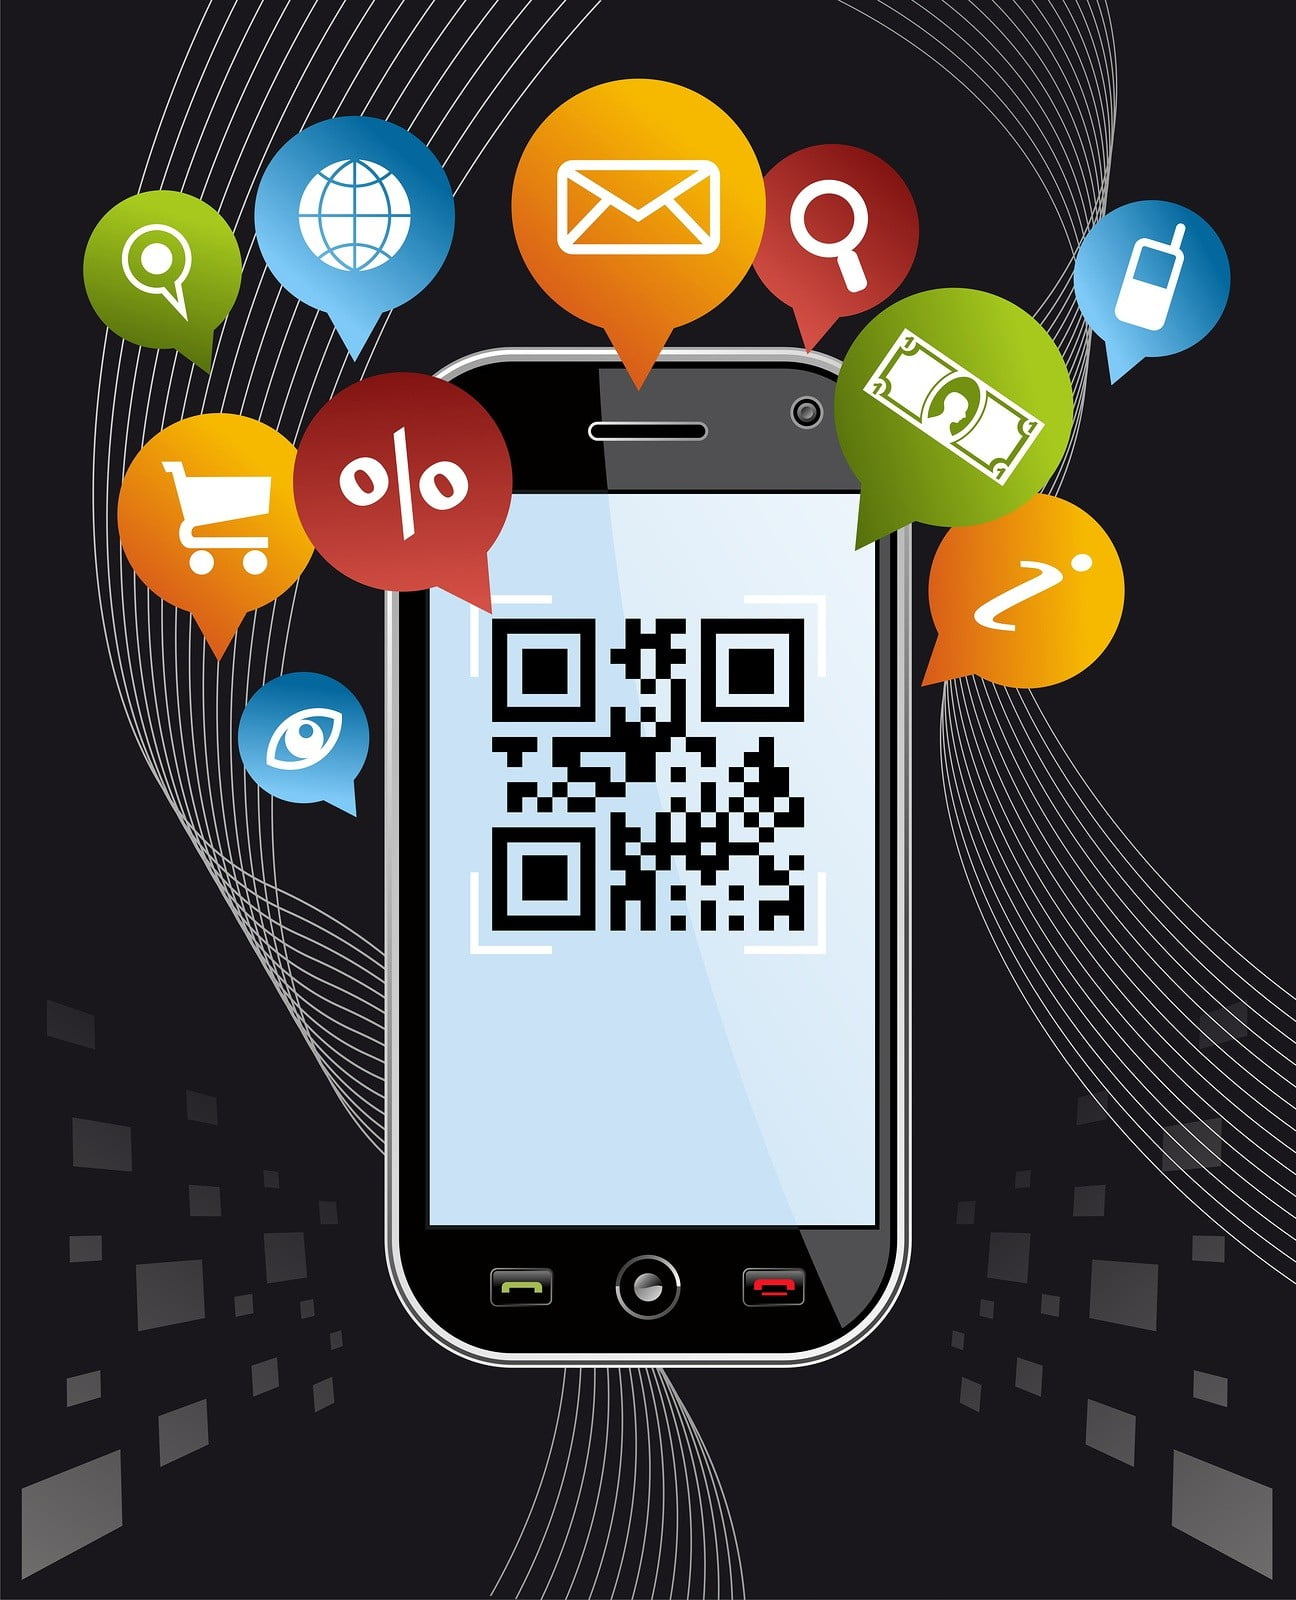 how to get qr into phone